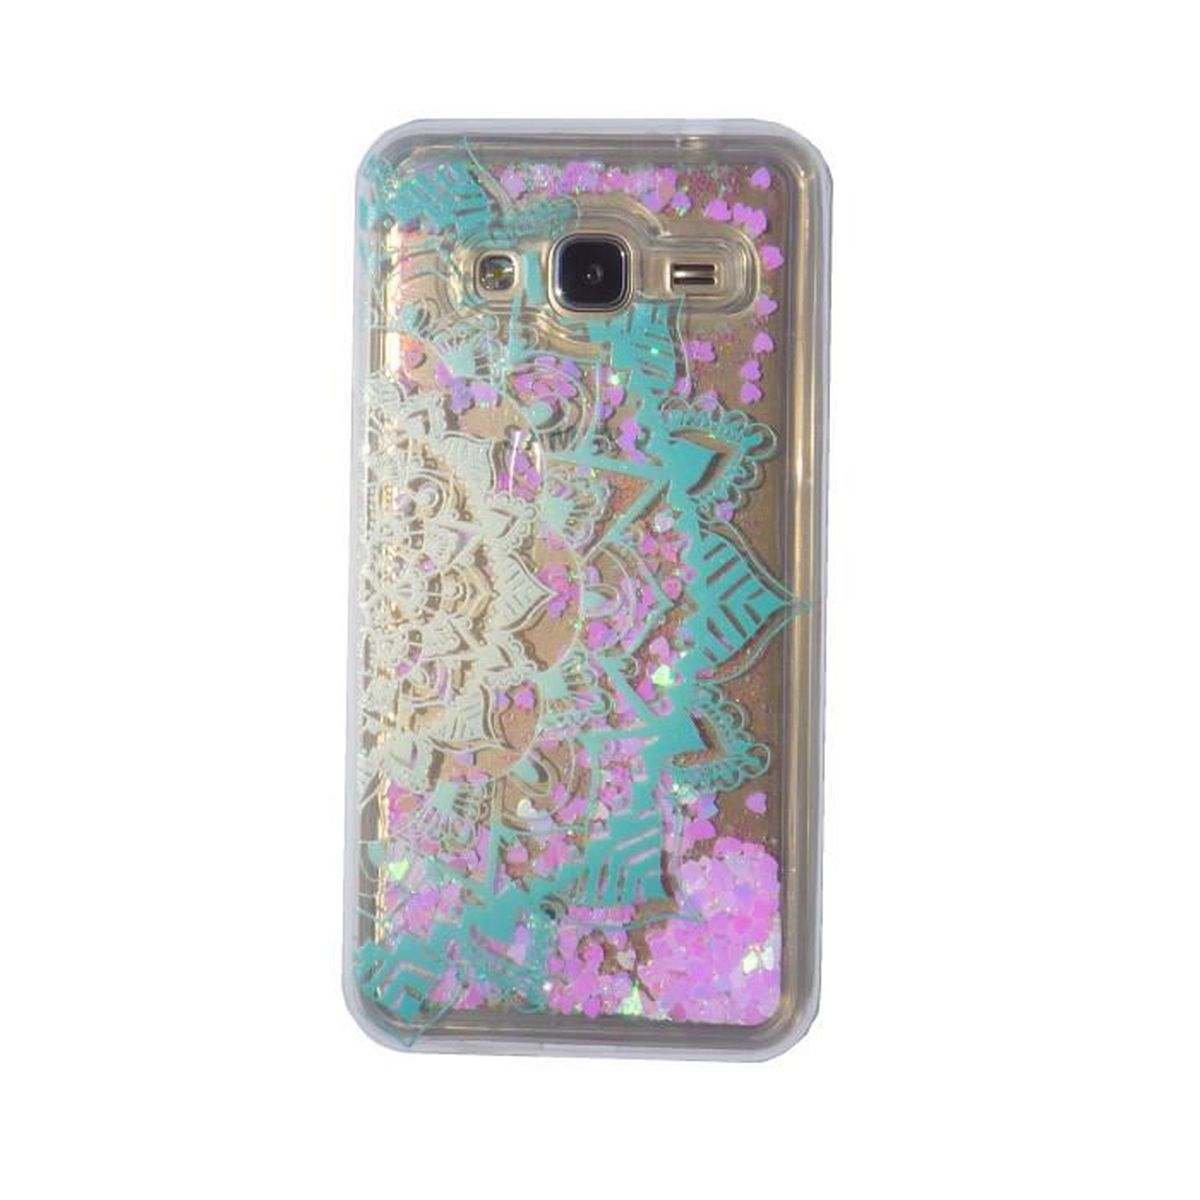 coque samsung galaxy j1 2016 paillette